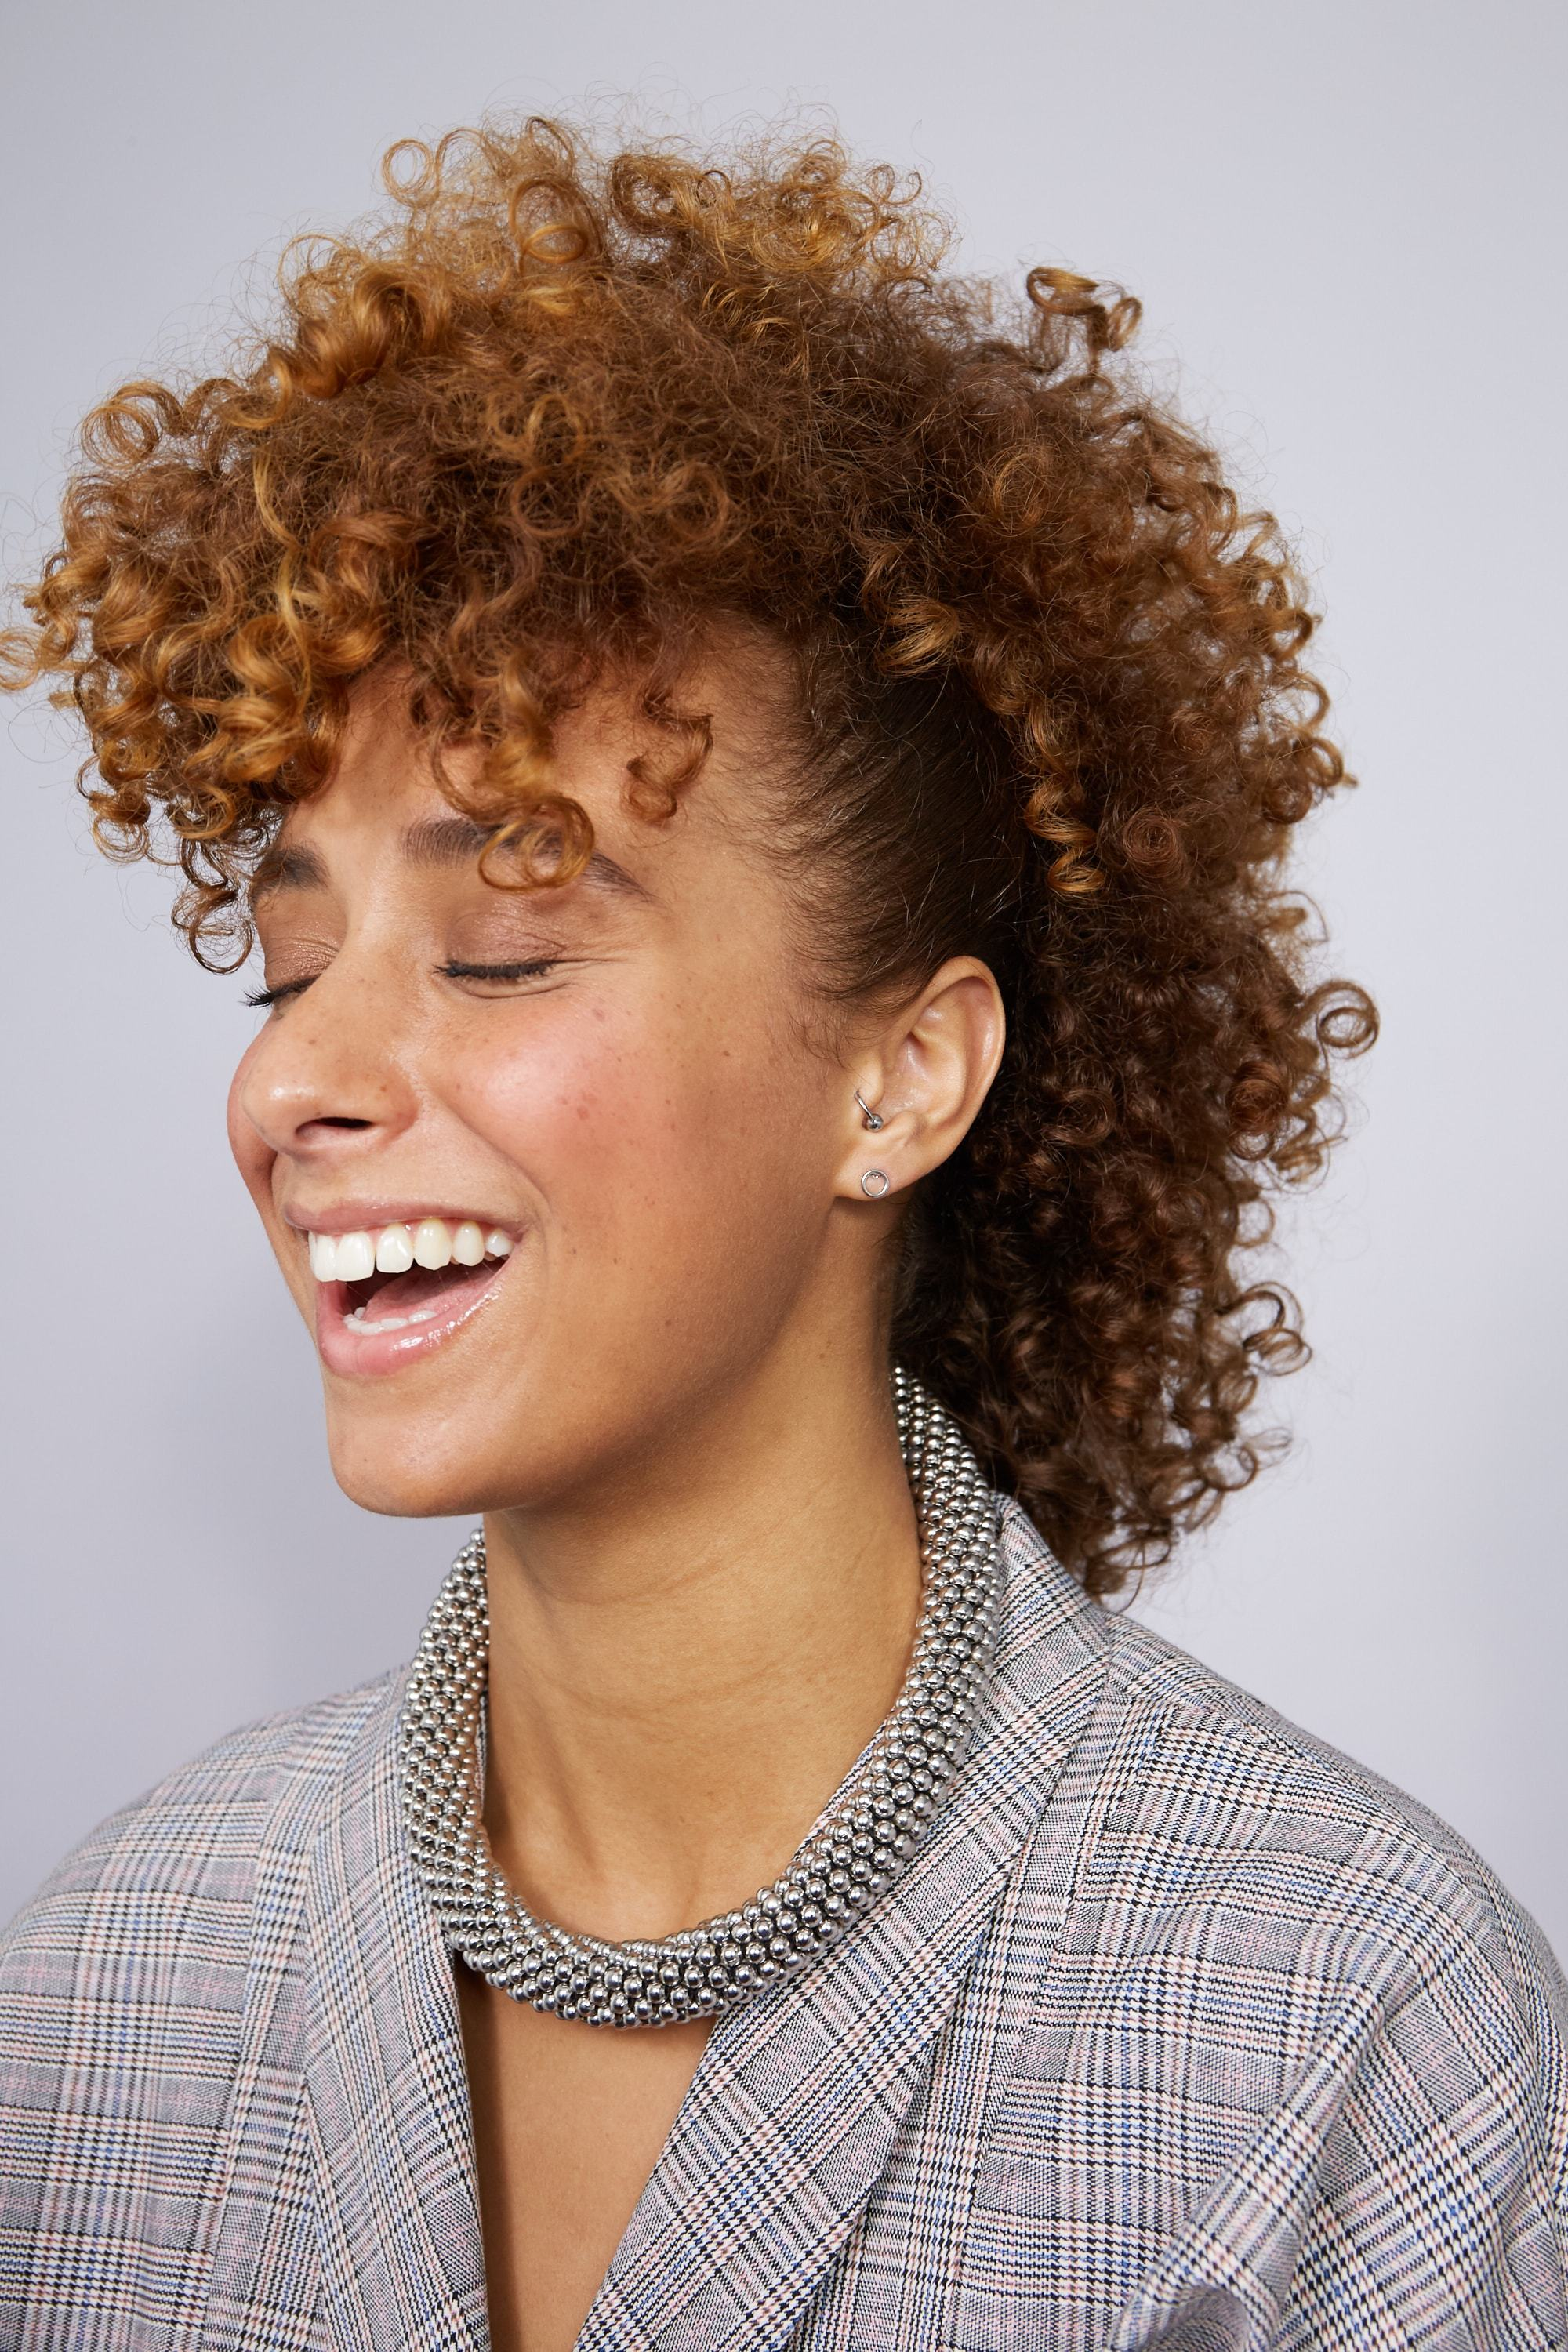 Party hair tips: Woman with natural caramel brown medium afro curls hair styled into frohawk, wearing a checked blazer and a silver necklace